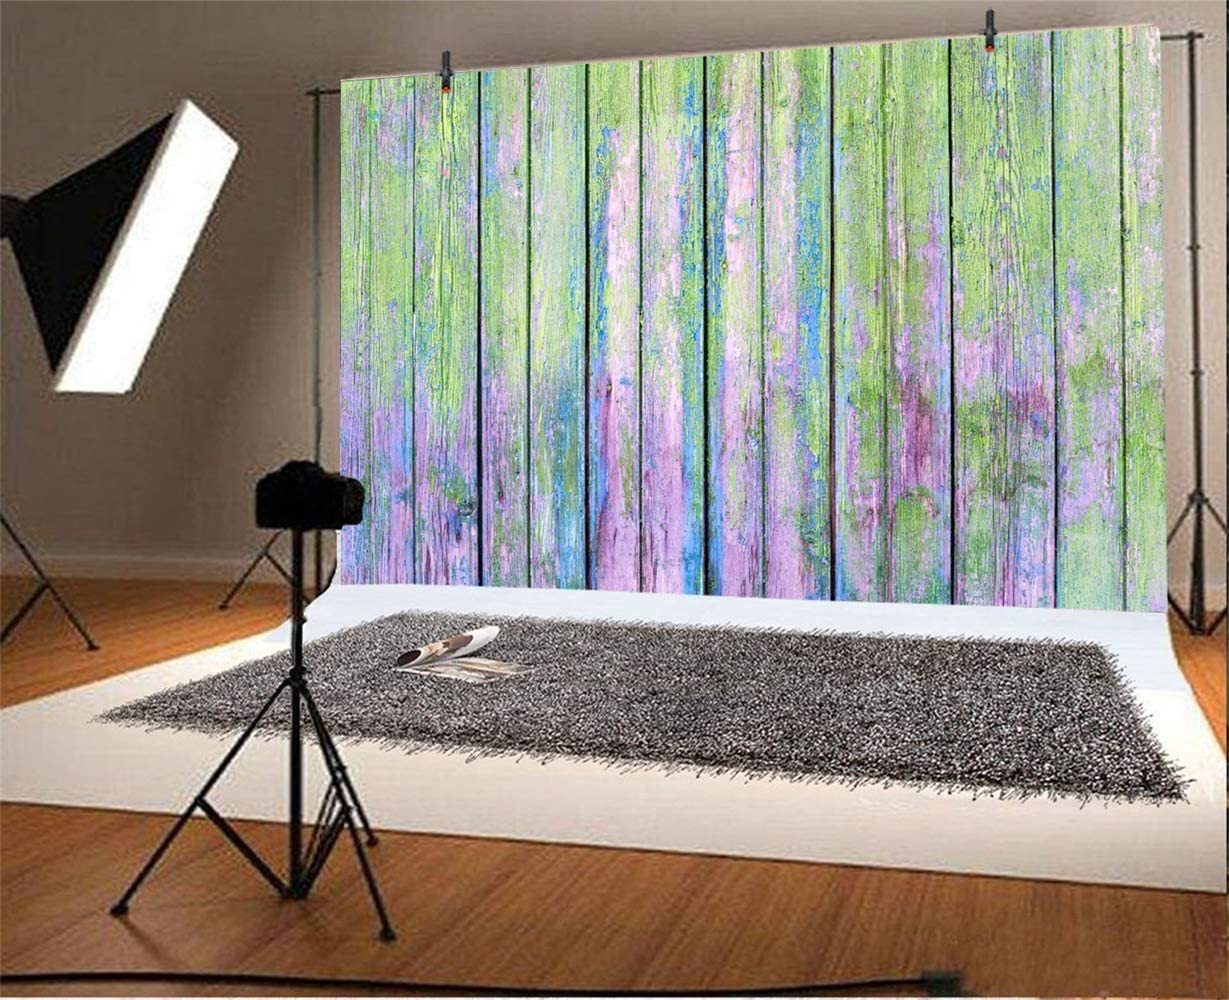 Weathered Painted Wood Plank Backdrops 10x6.5ft Polyester Faded Old Grunge Wooden Wall Photography Backdrop Rustic Mossy Vertical Striped Wood Board Background Personal Photo Studio Props